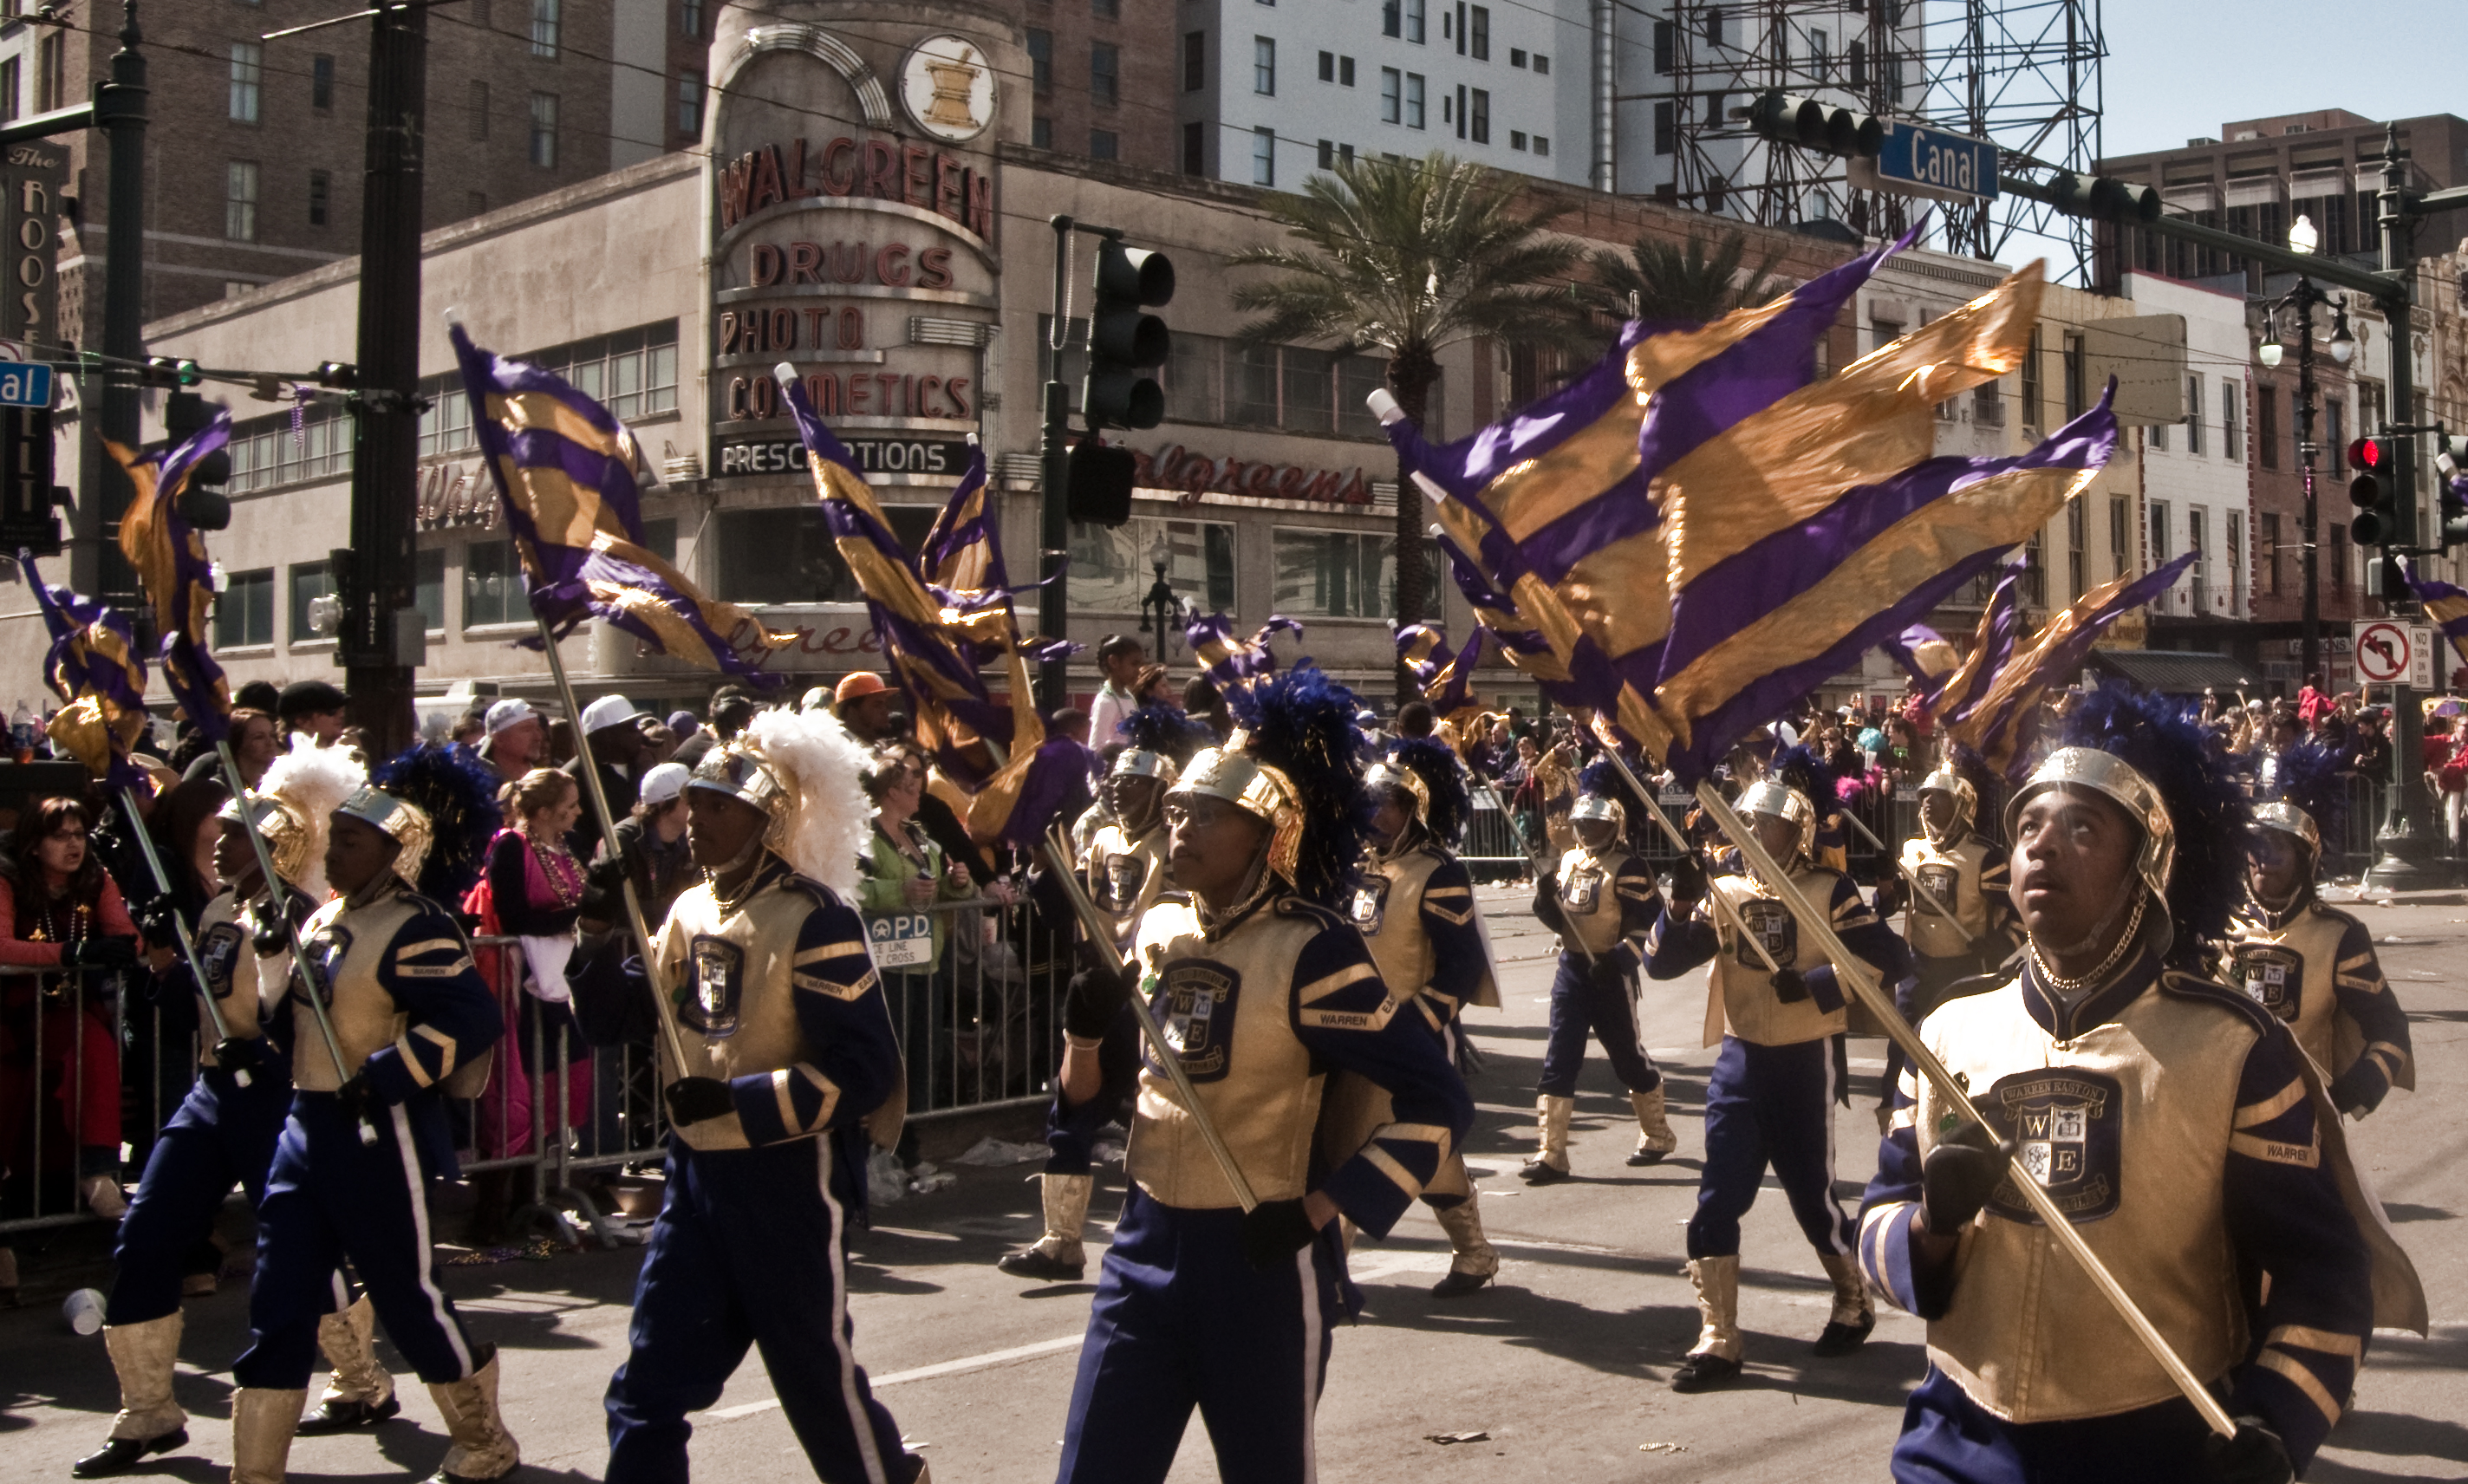 Mardis Gras New Orleans - NOLA Criminal Law